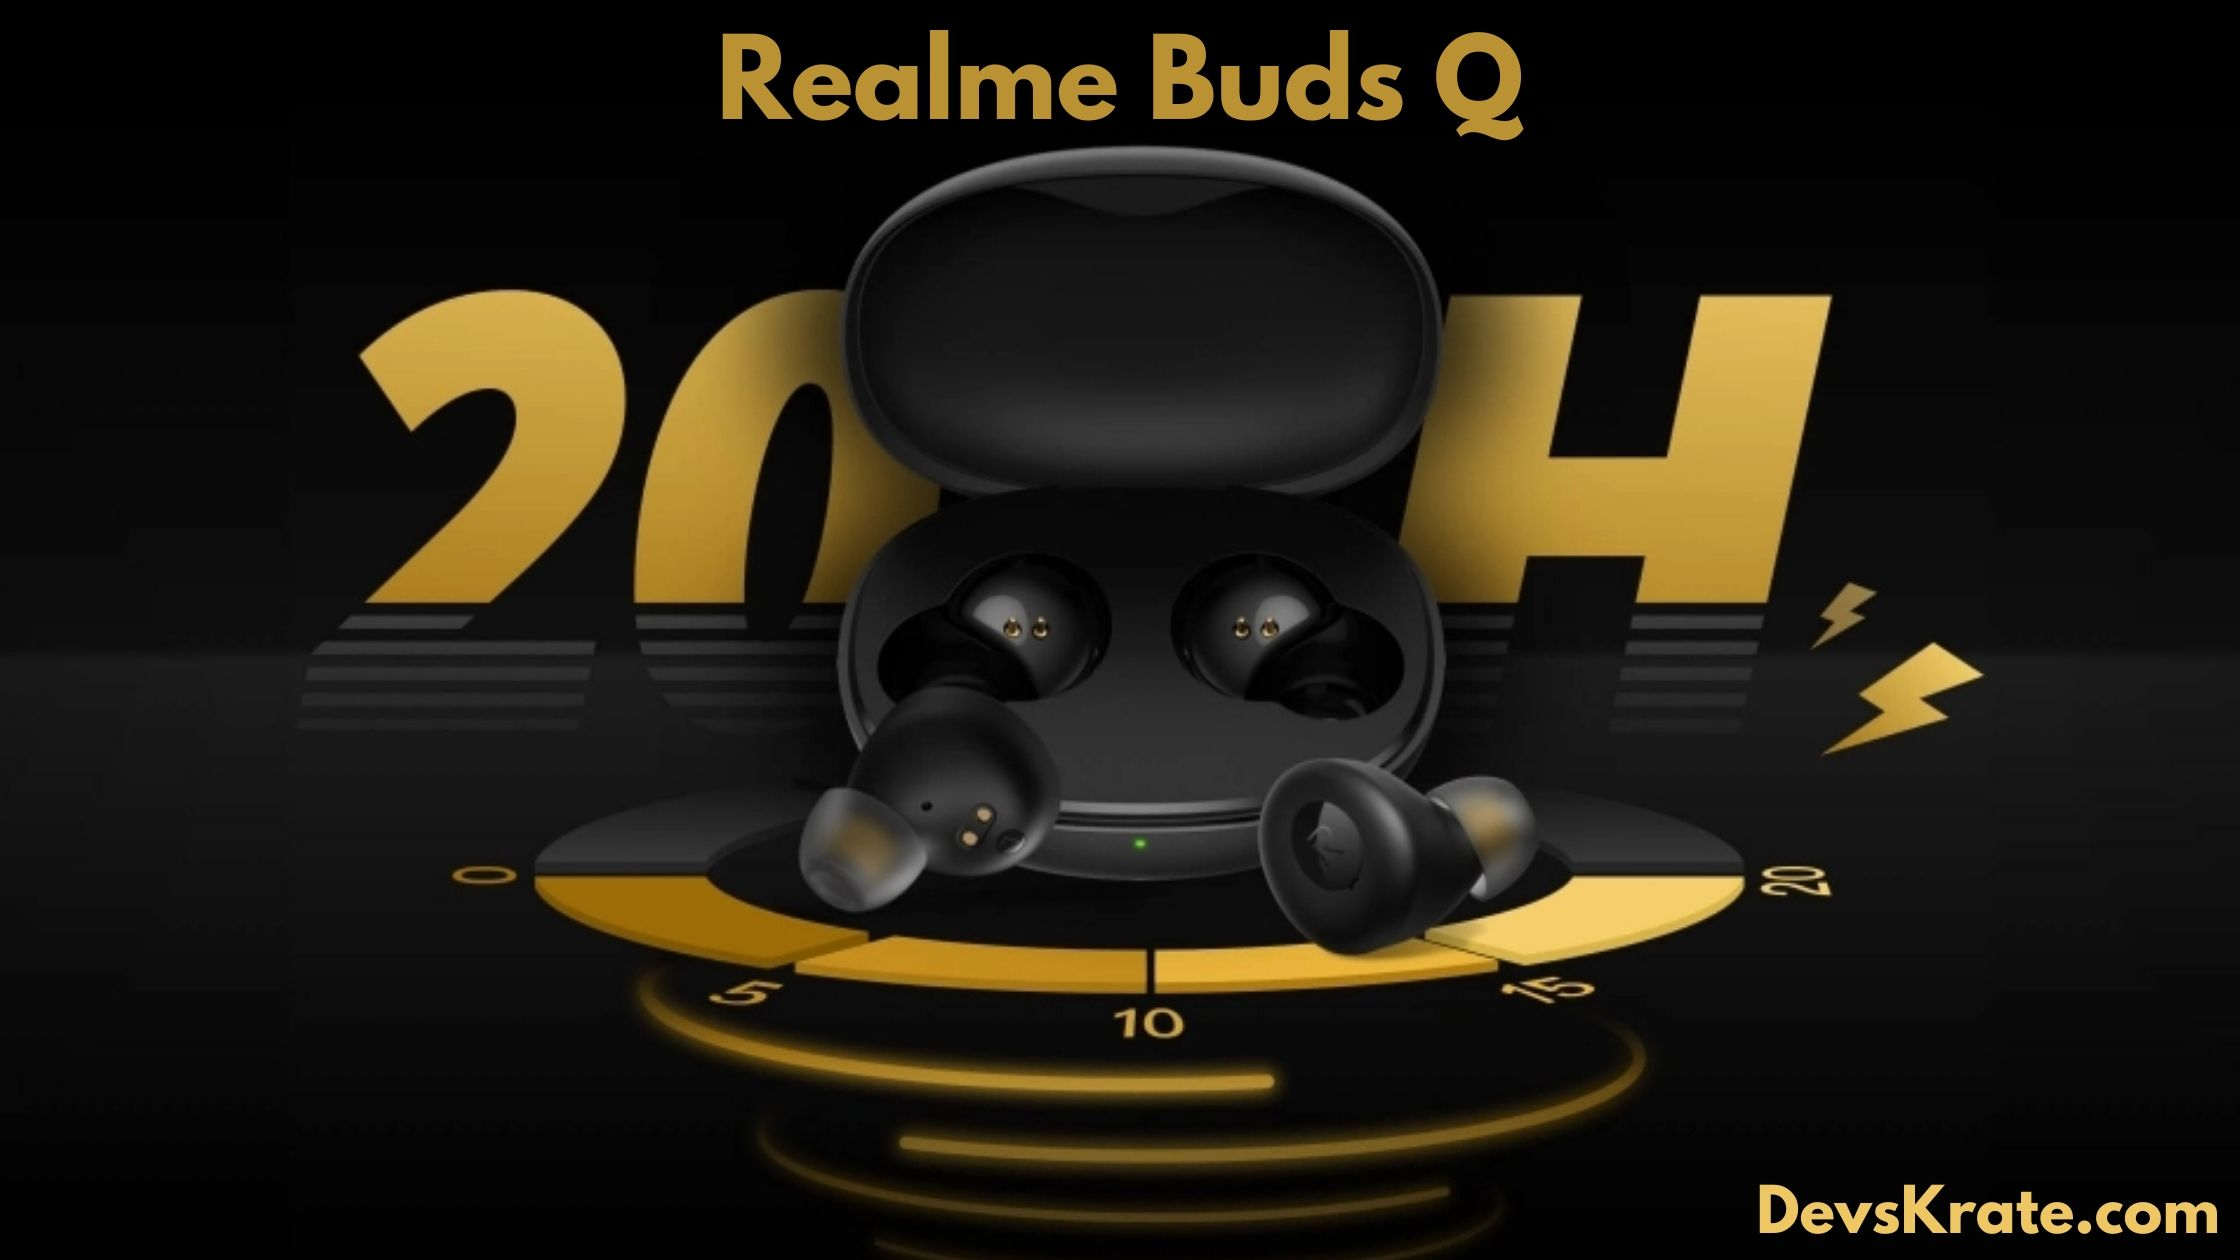 Realme Buds Q launched in India